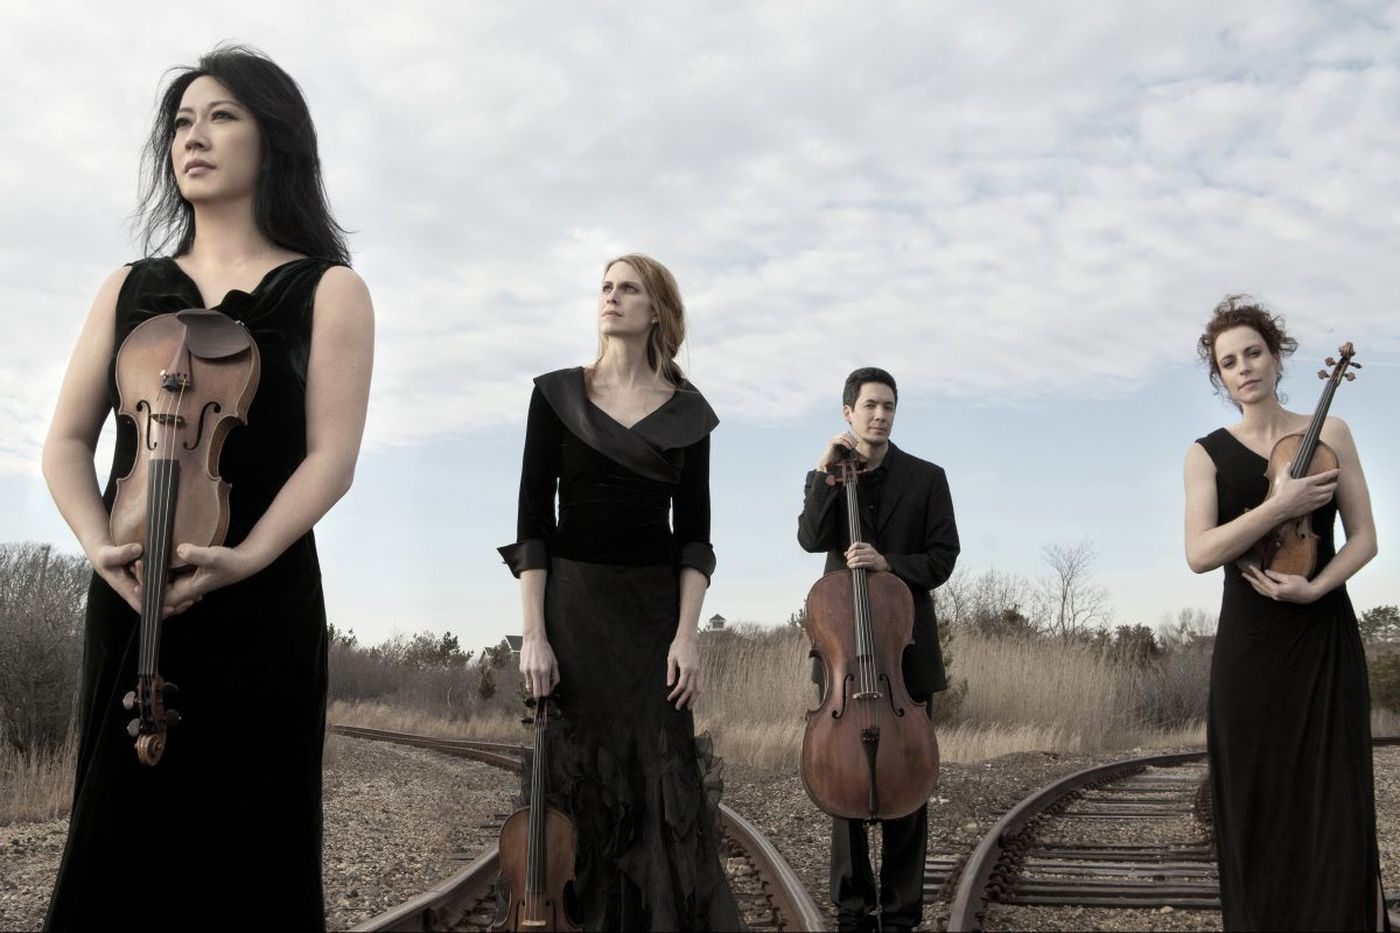 At Penn, Daedalus boldly embarks on the full Beethoven string-quartet cycle